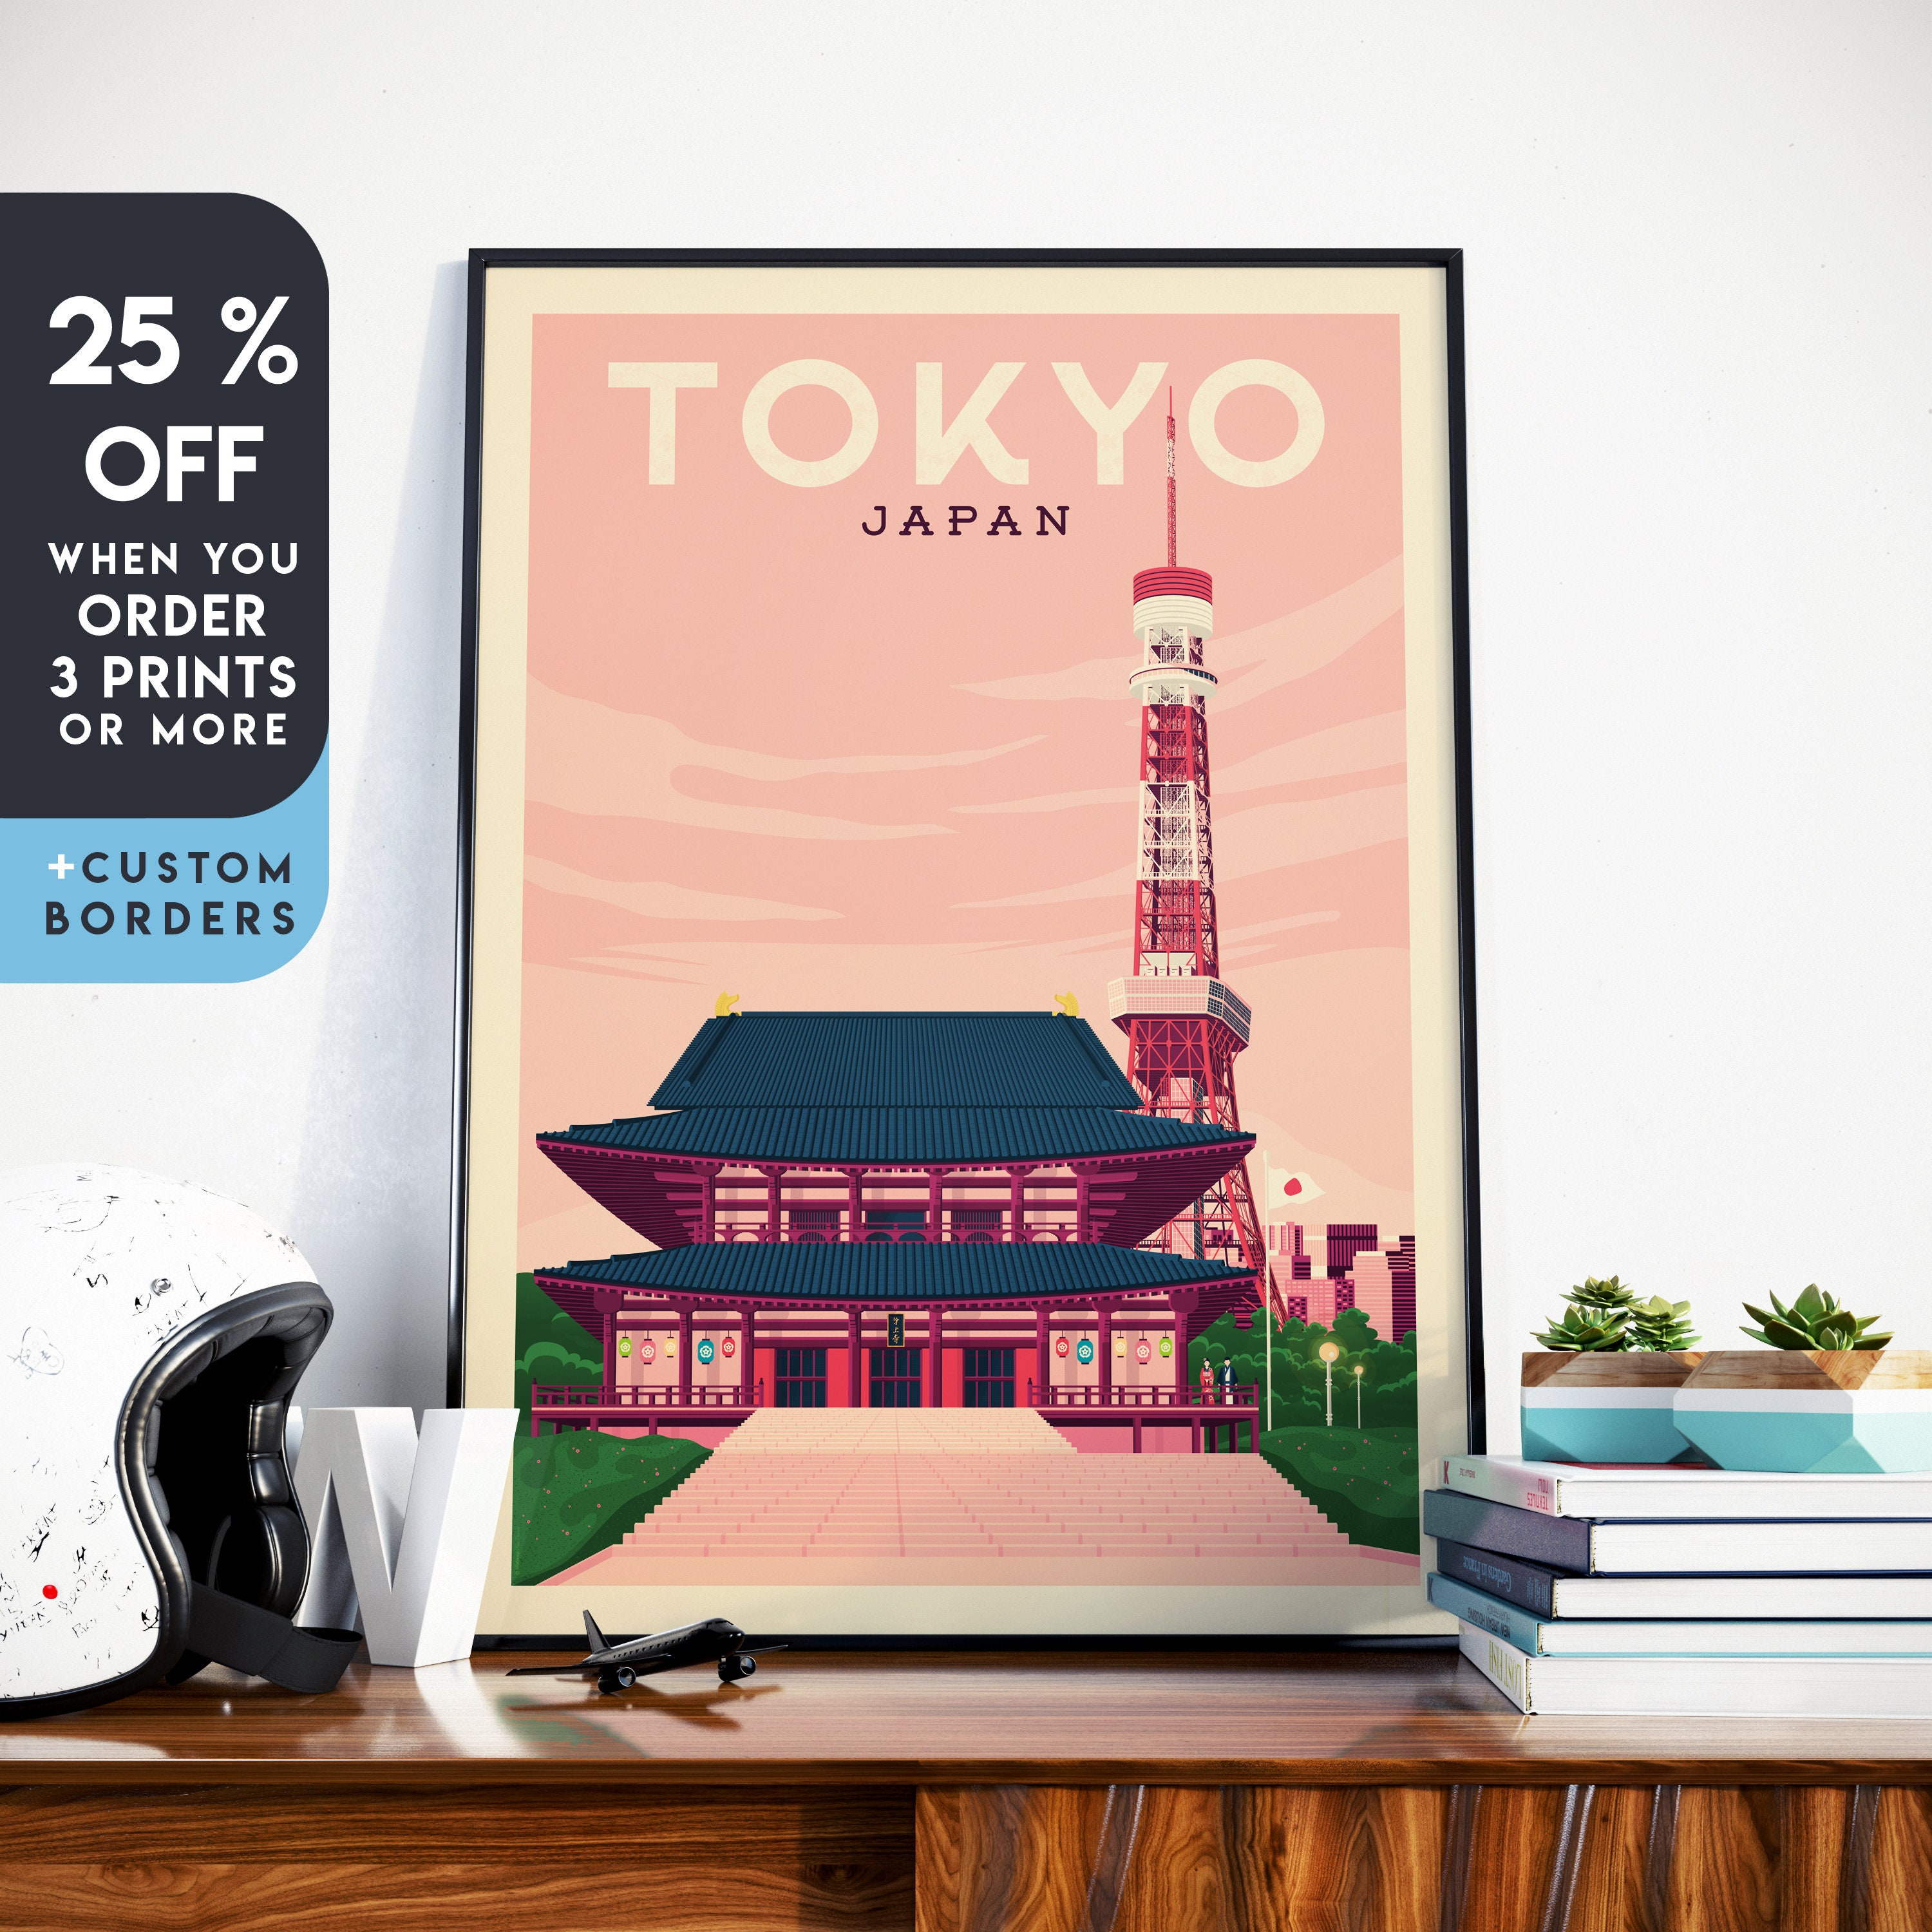 VINTAGE JAPANESE TOURISM JAPAN VACATION TRAVEL AD POSTER ART REAL CANVAS PRINT